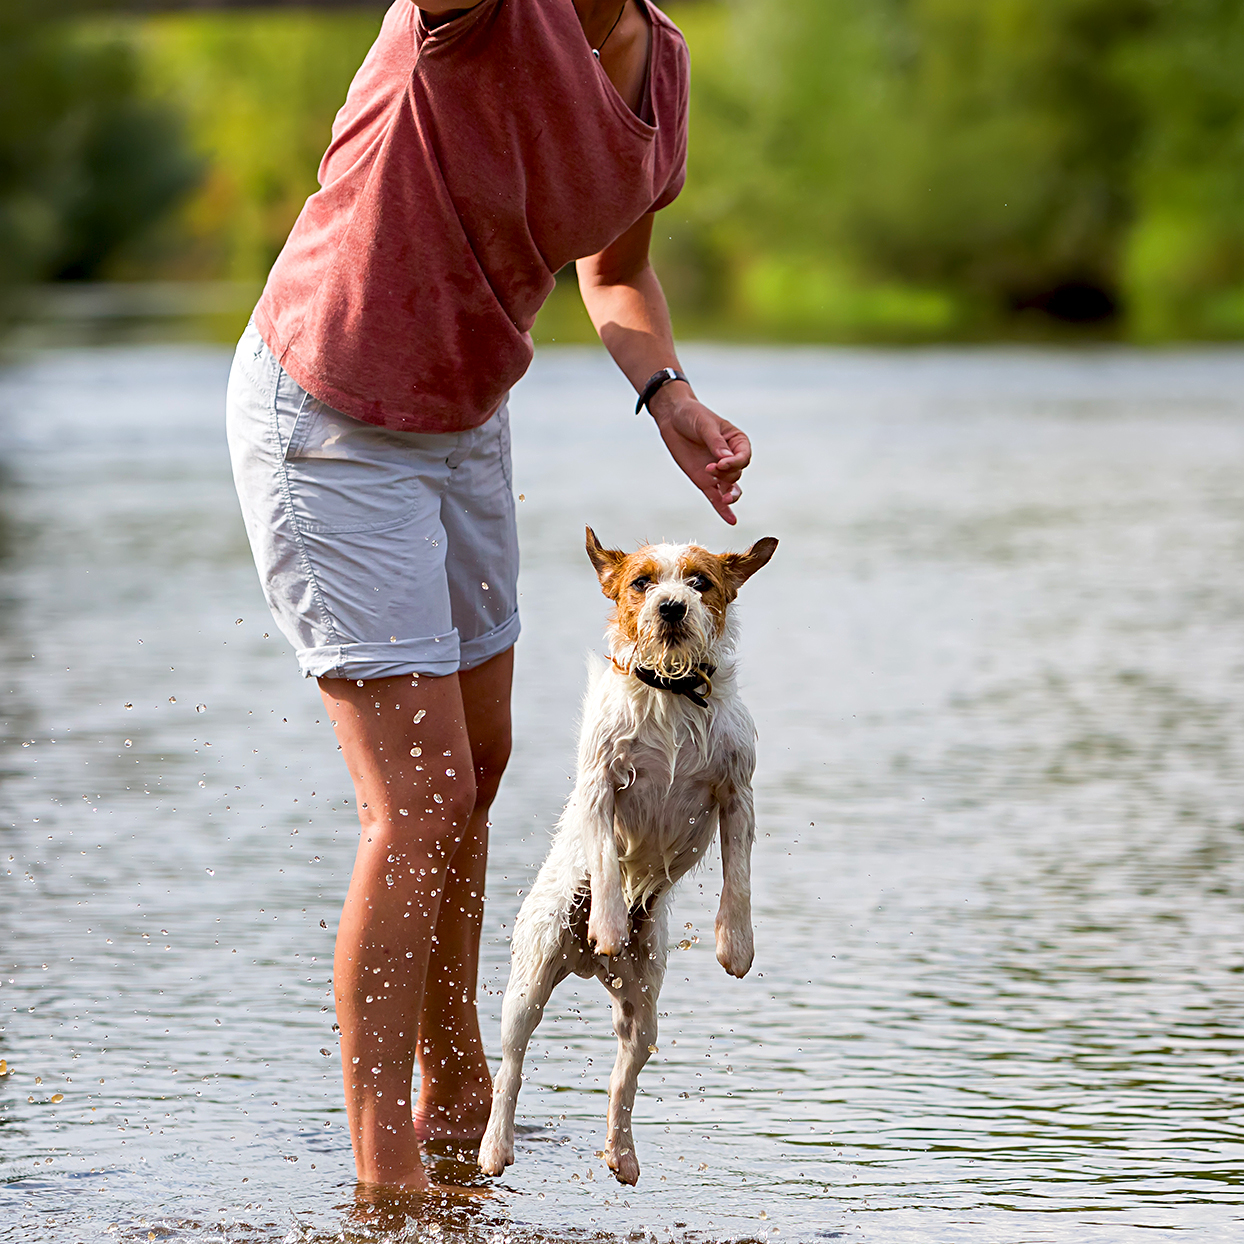 parson russell terrier jumping out of the water at a lake with his owner